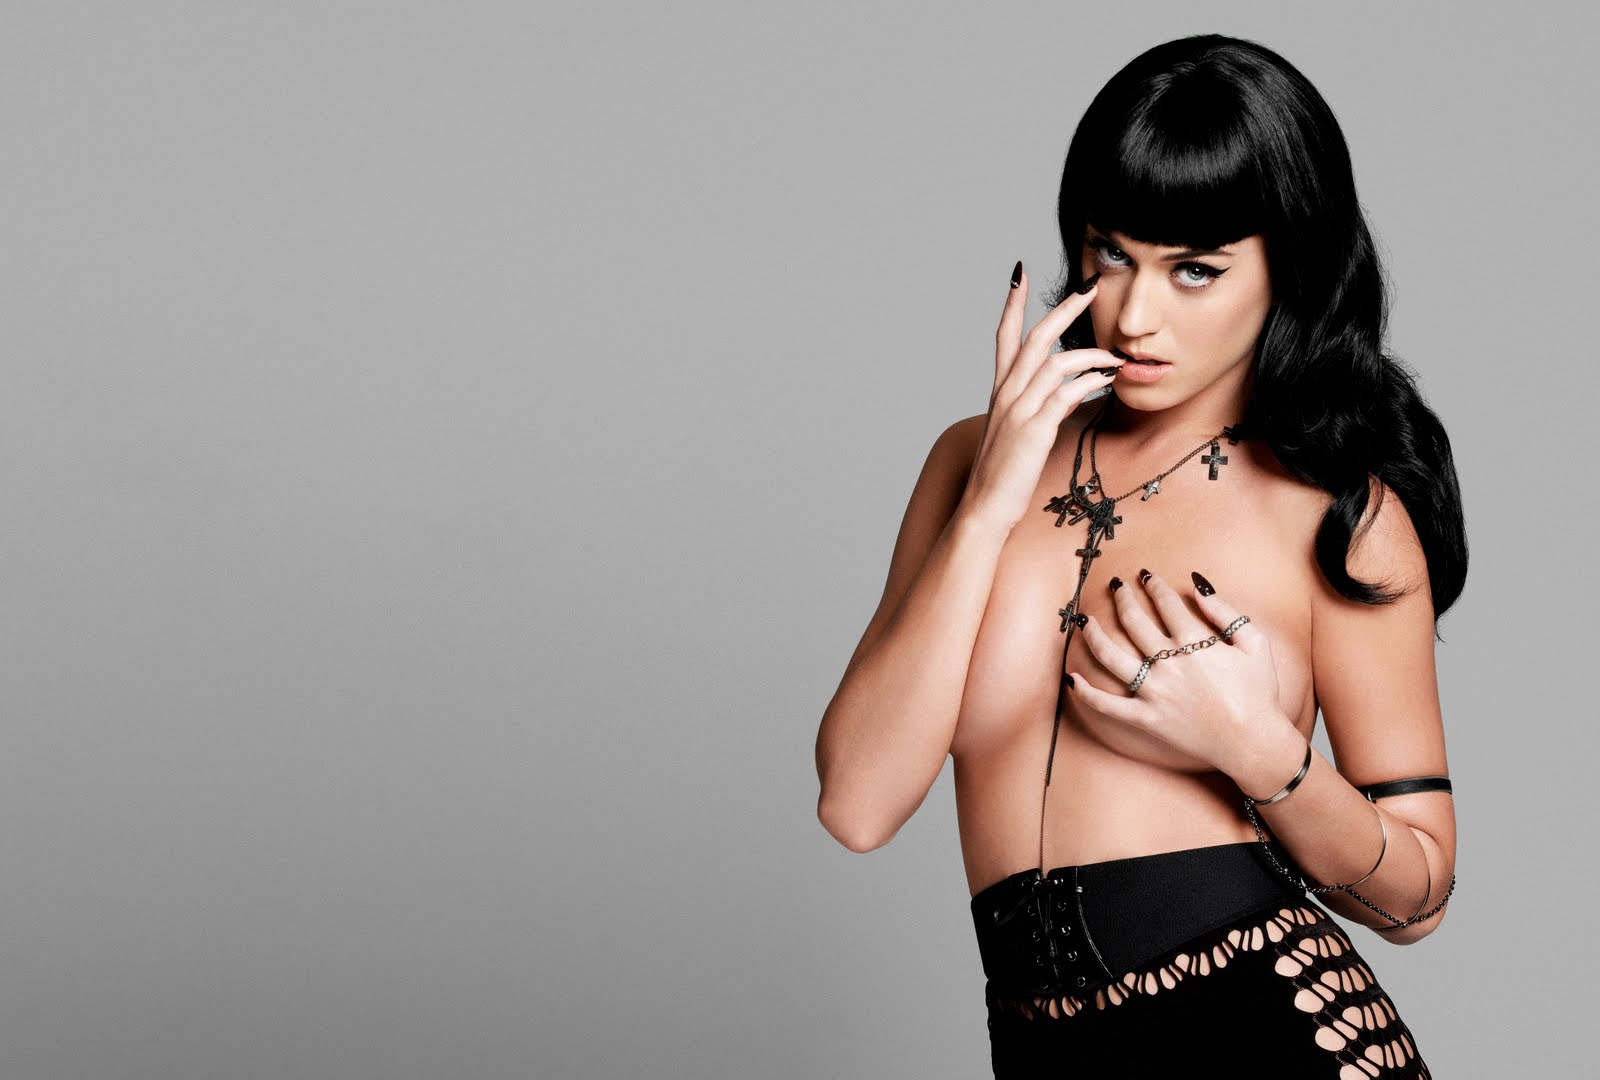 http://2.bp.blogspot.com/_49jceXvjh3g/TDNKv4fBDhI/AAAAAAAAD7E/HZ1B06_Nsho/s1600/71053_Katy_Perry_Yu_Tsai_Photoshoot_2010_for_Esquire_2_122_524lo.jpg